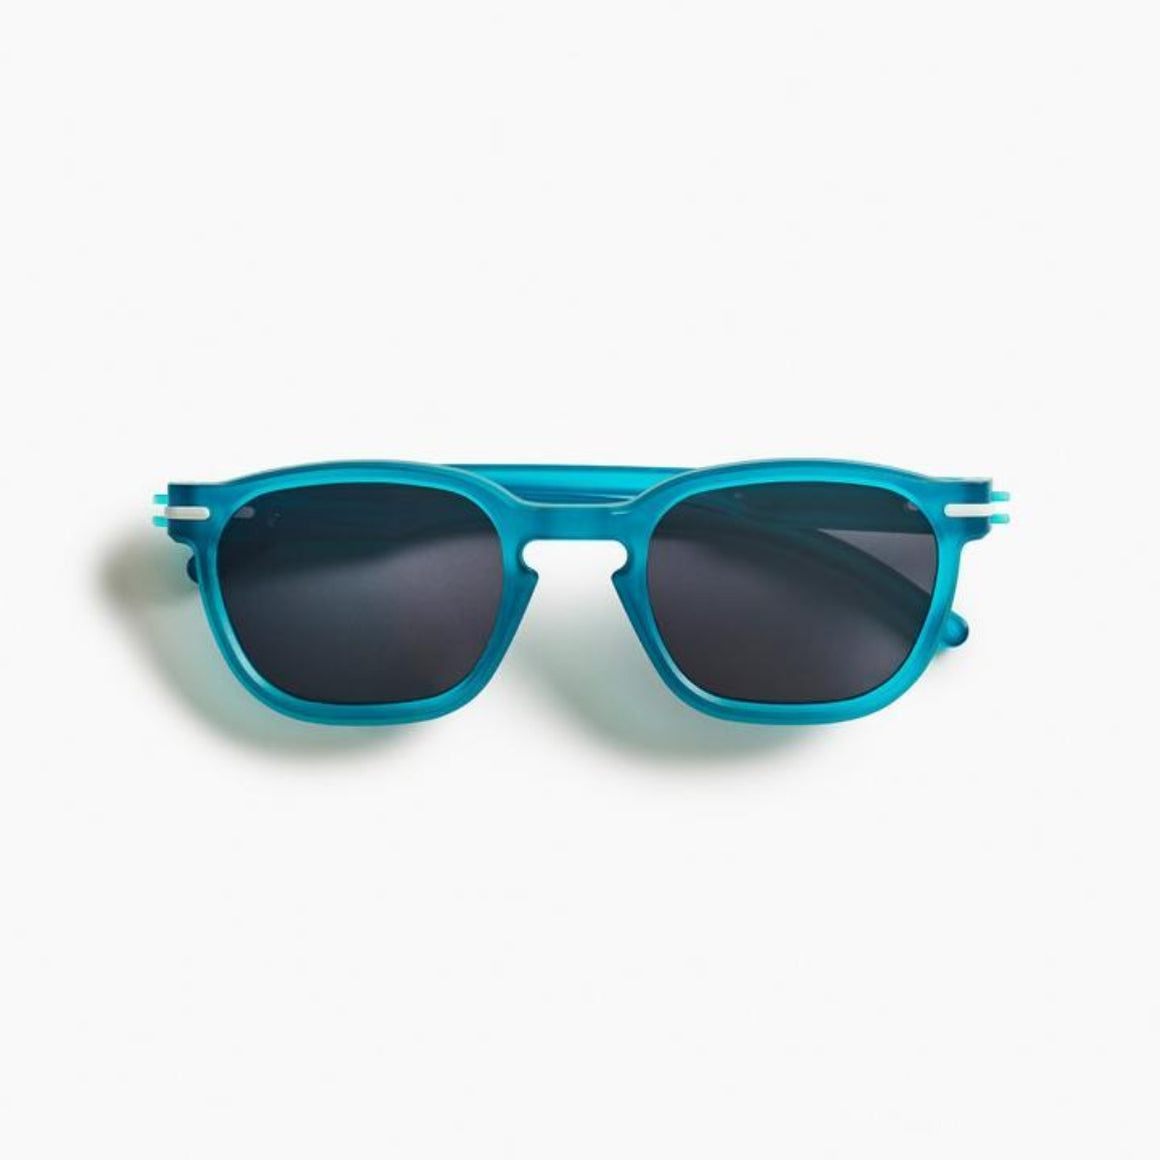 Image featuring a white background with classically designed square framed sunglasses in a Aqua/blue colour